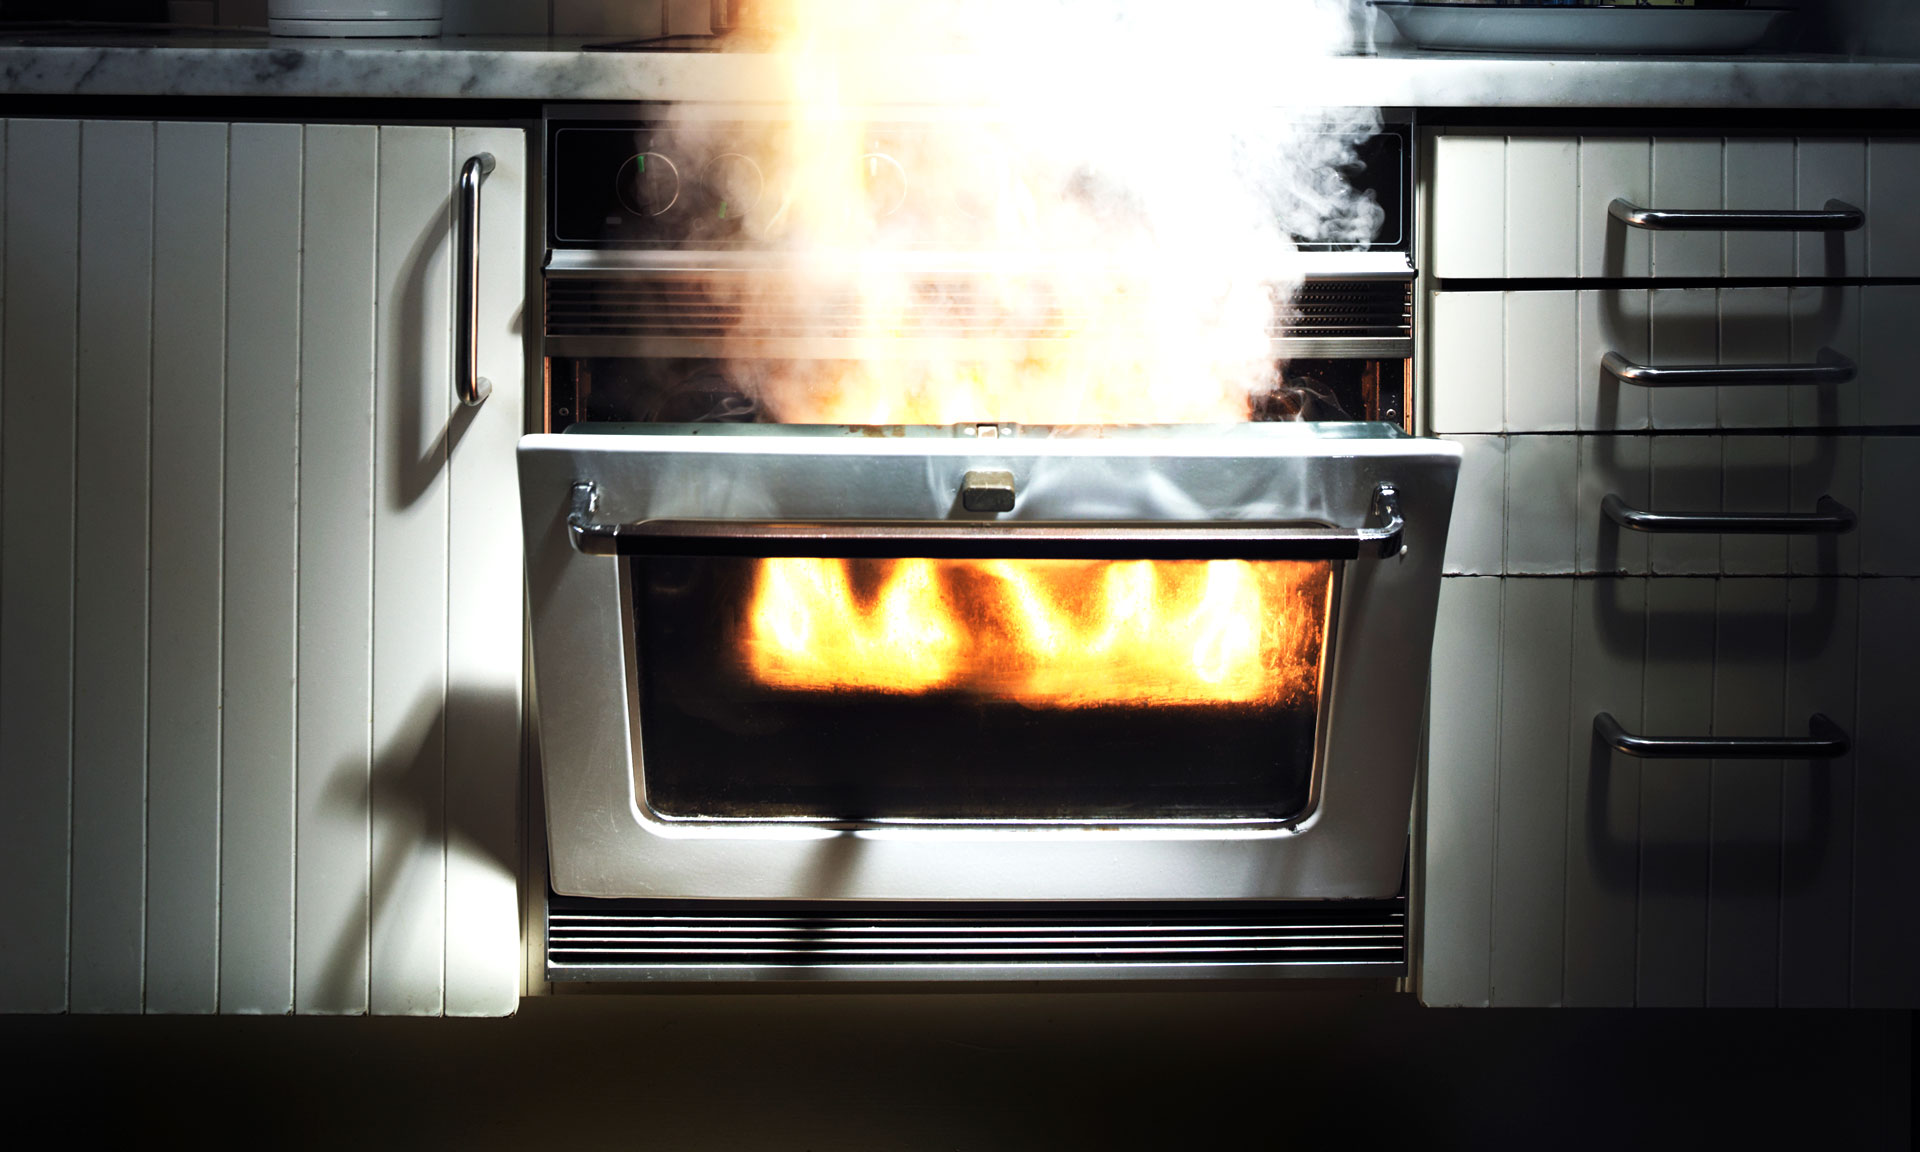 Revealed The Brands Linked To The Most Appliance Fires